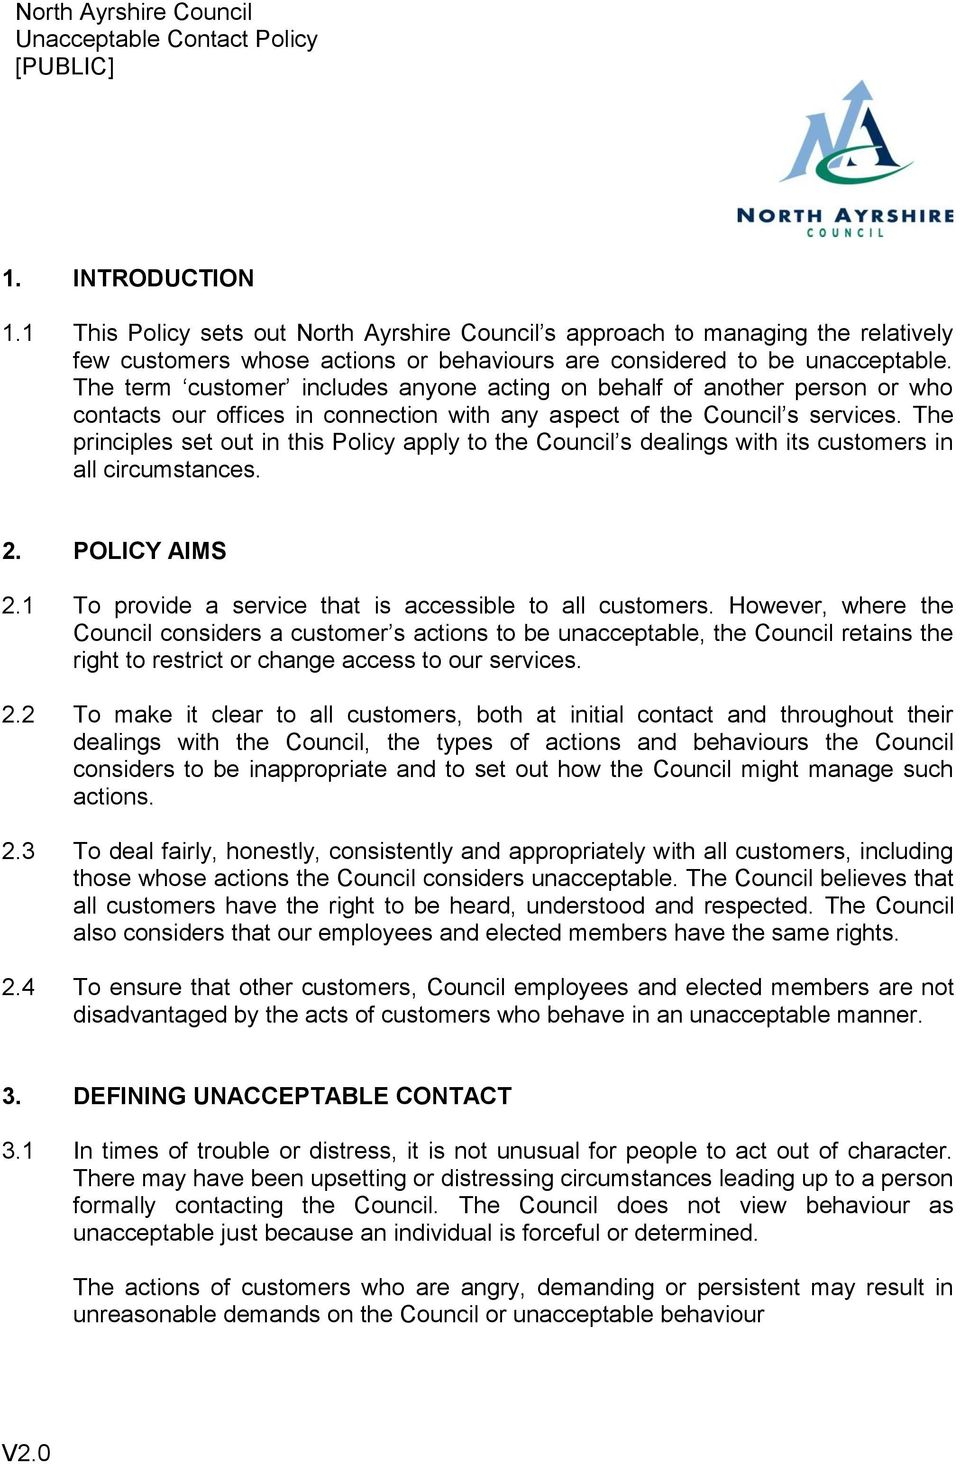 The principles set out in this Policy apply to the Council s dealings with its customers in all circumstances. 2. POLICY AIMS 2.1 To provide a service that is accessible to all customers.